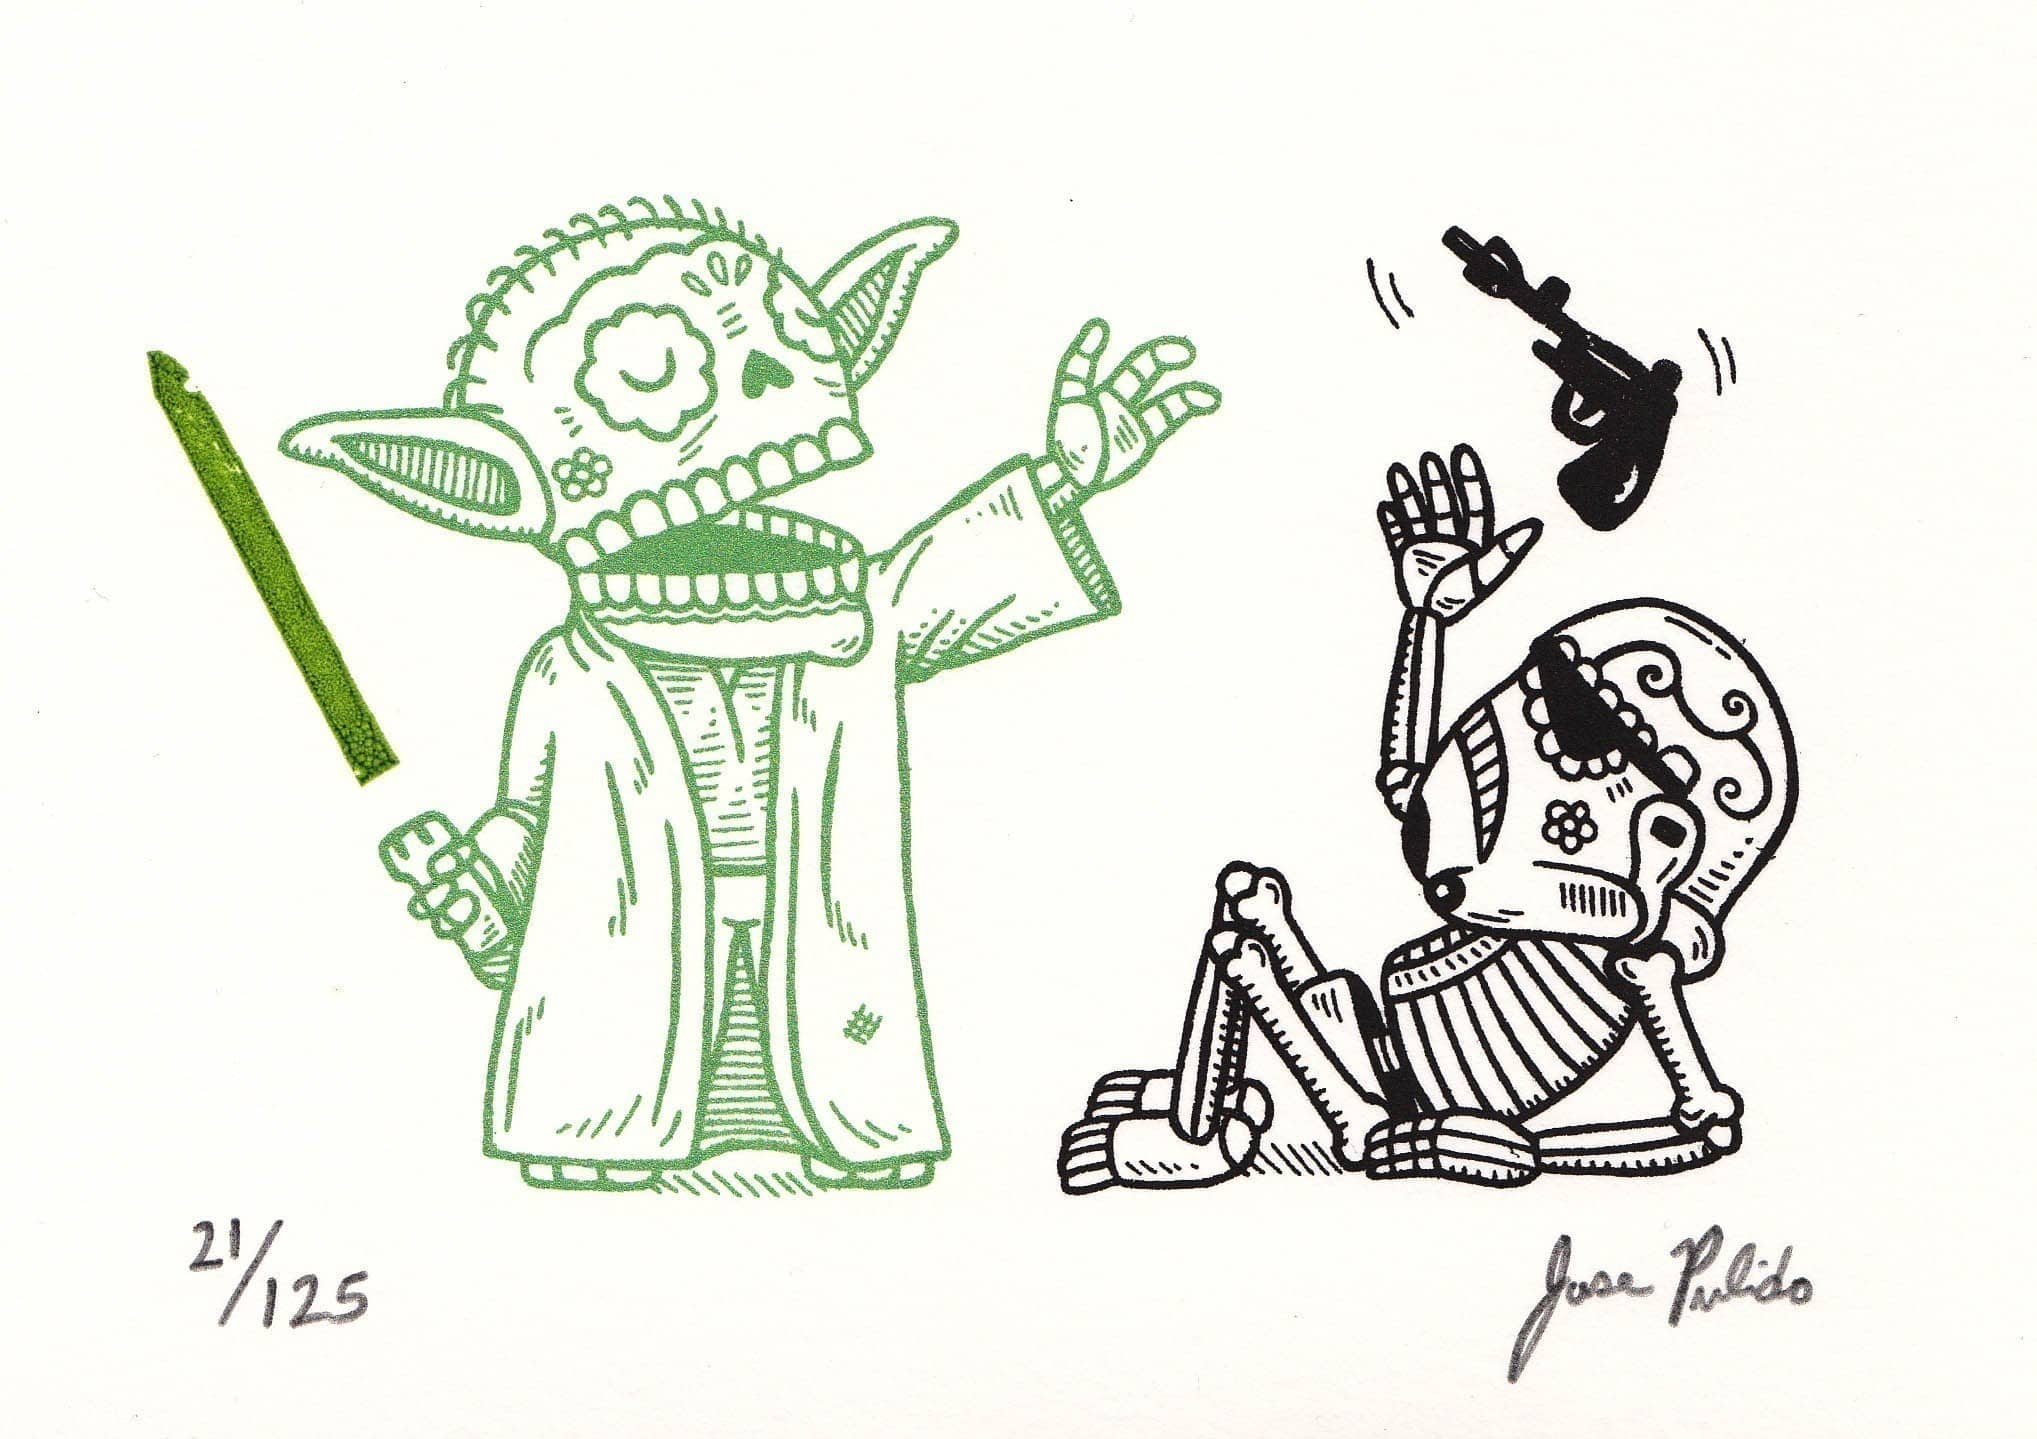 Star Wars In The Form Of Mexican Traditional Art